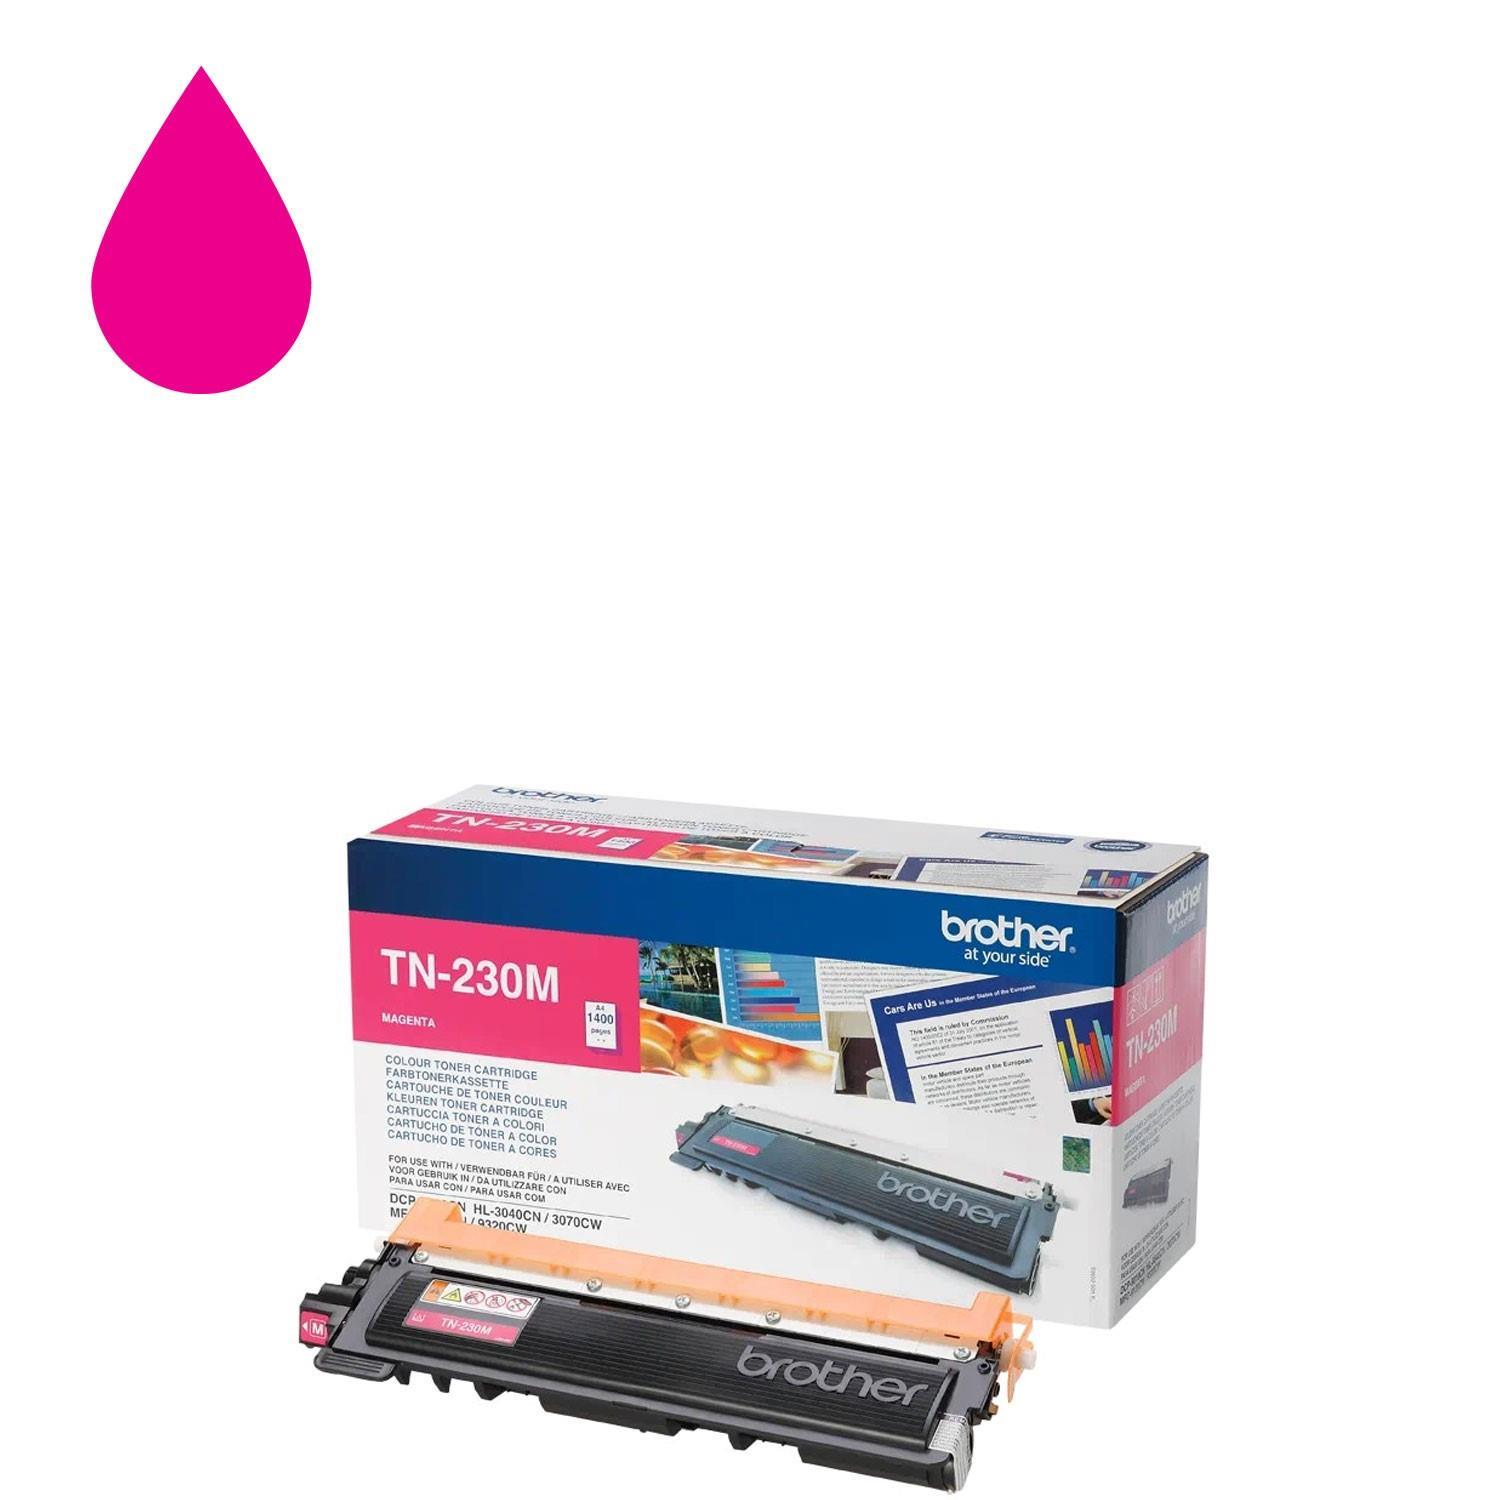 Brother TN230M Toner Cartridge - Magenta (Laser - 1400 Page)